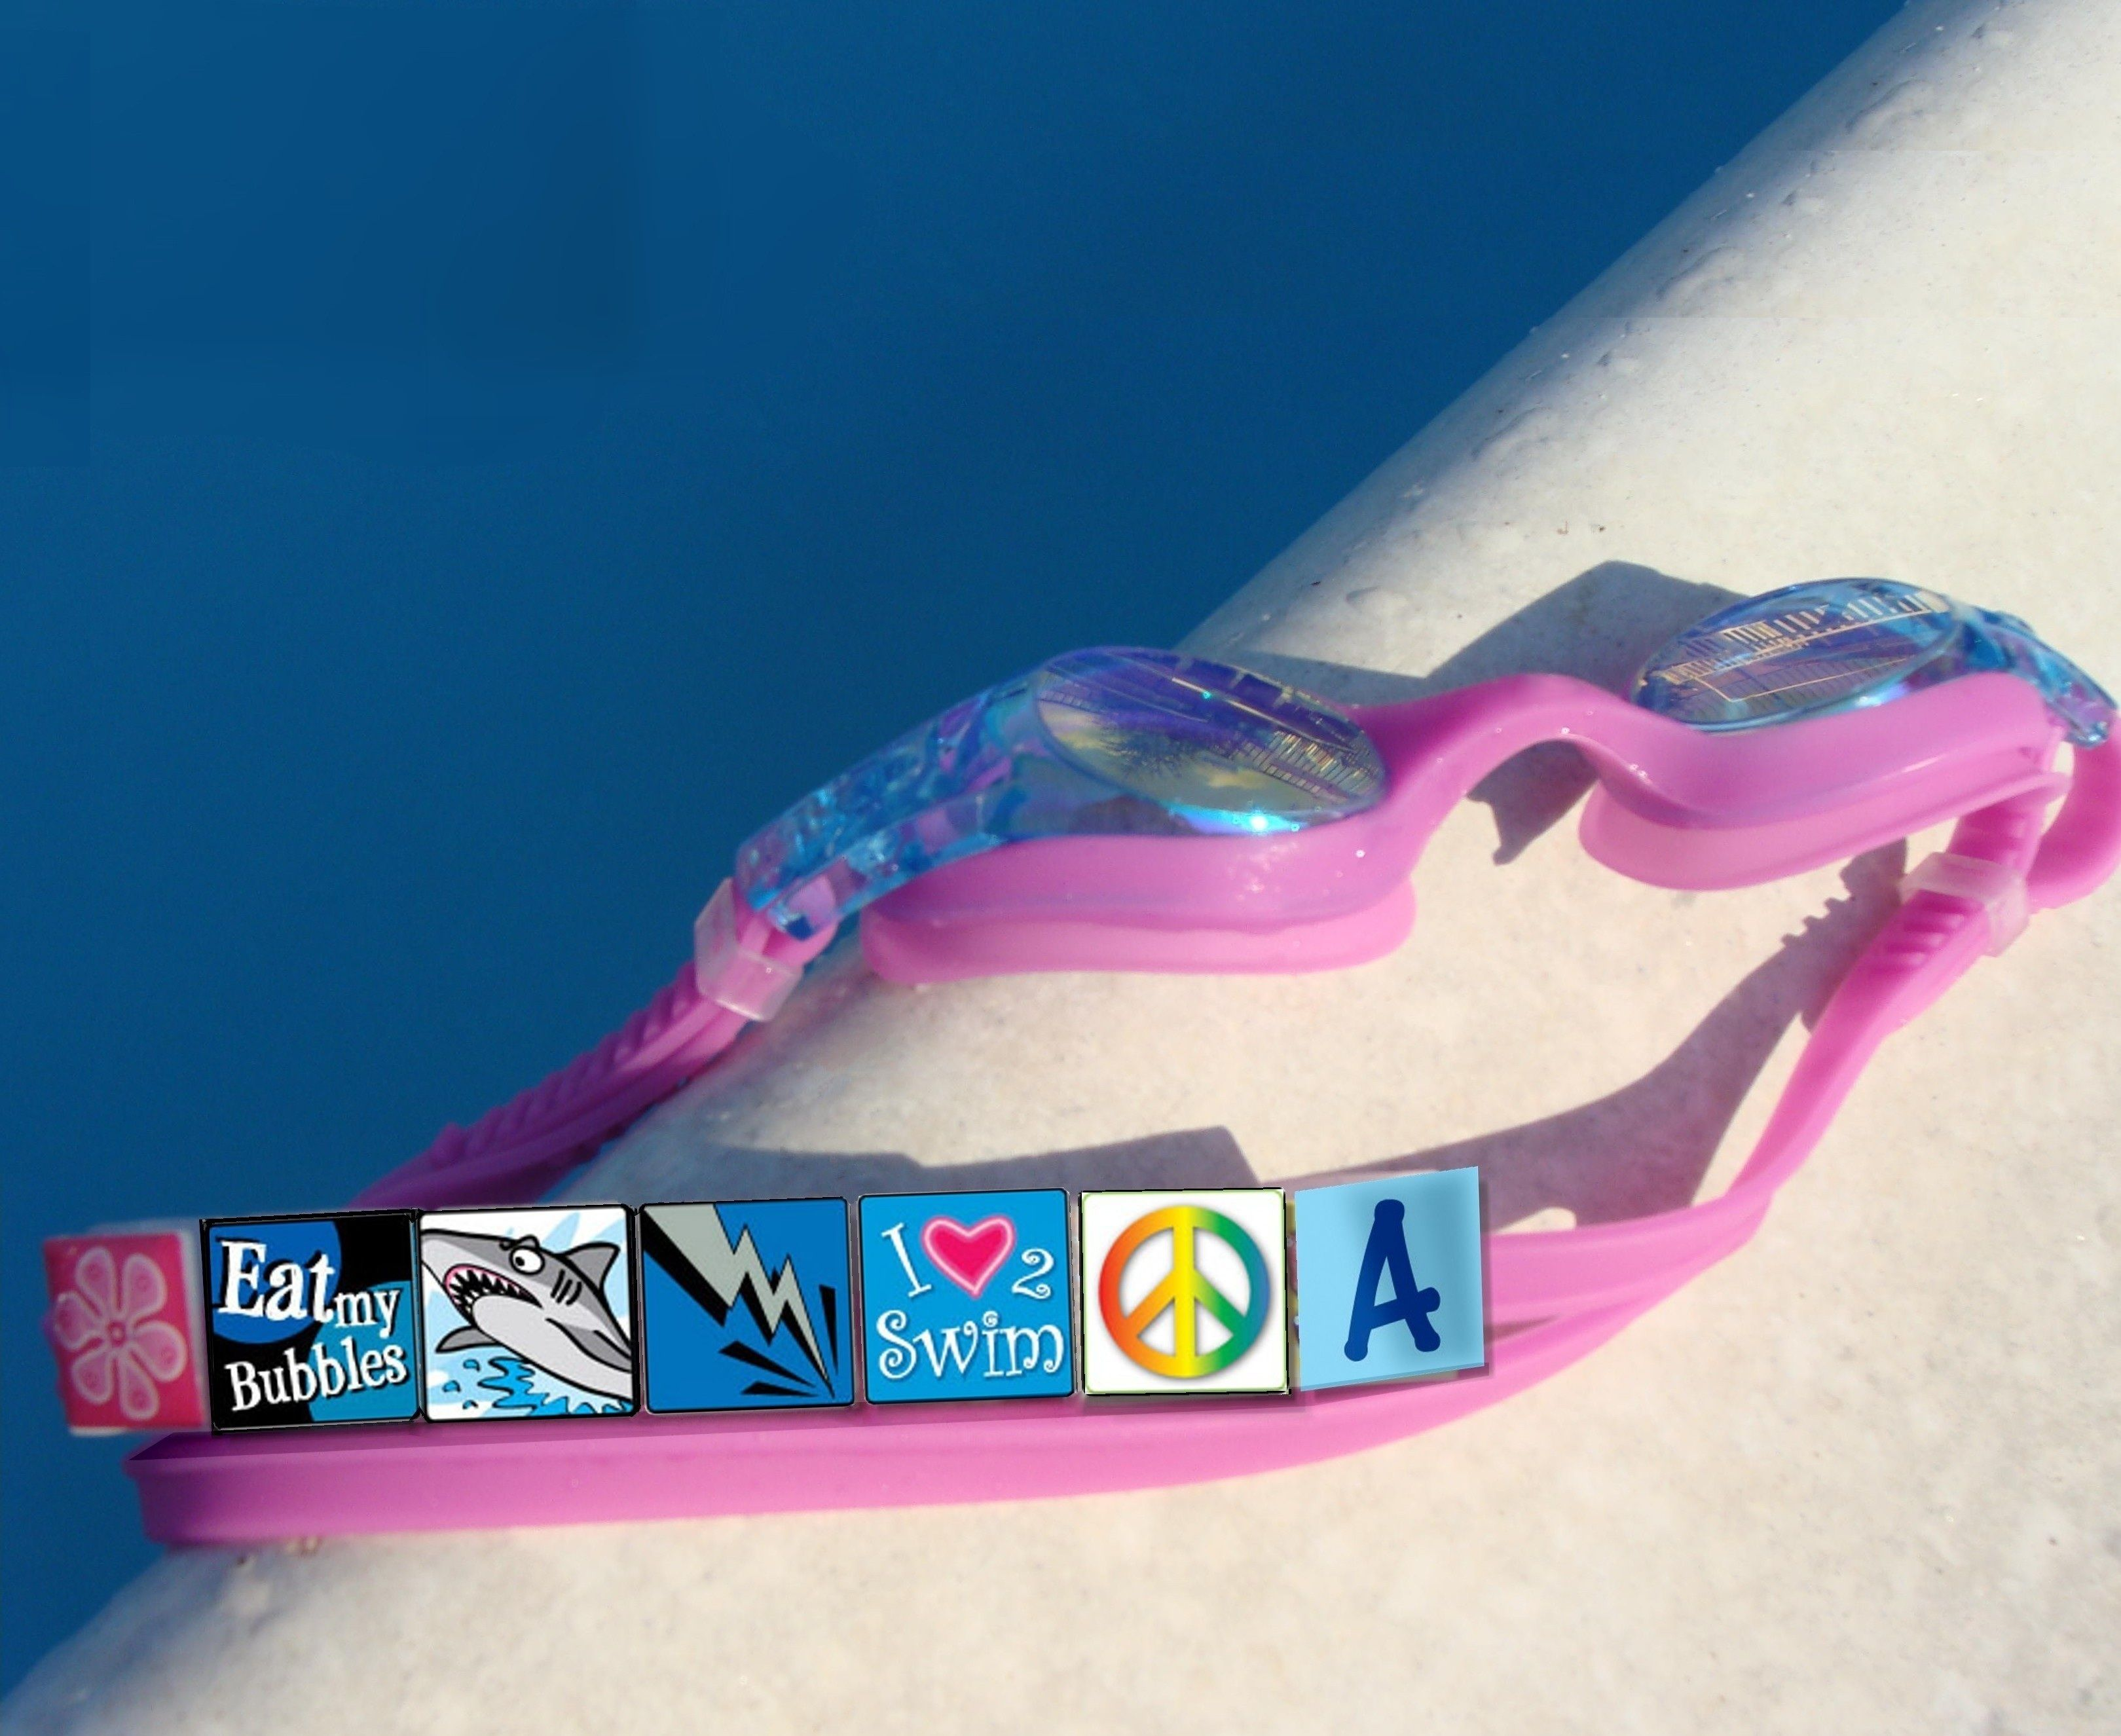 Taggoggles! A fun way to identify which pair of goggles belong to you.